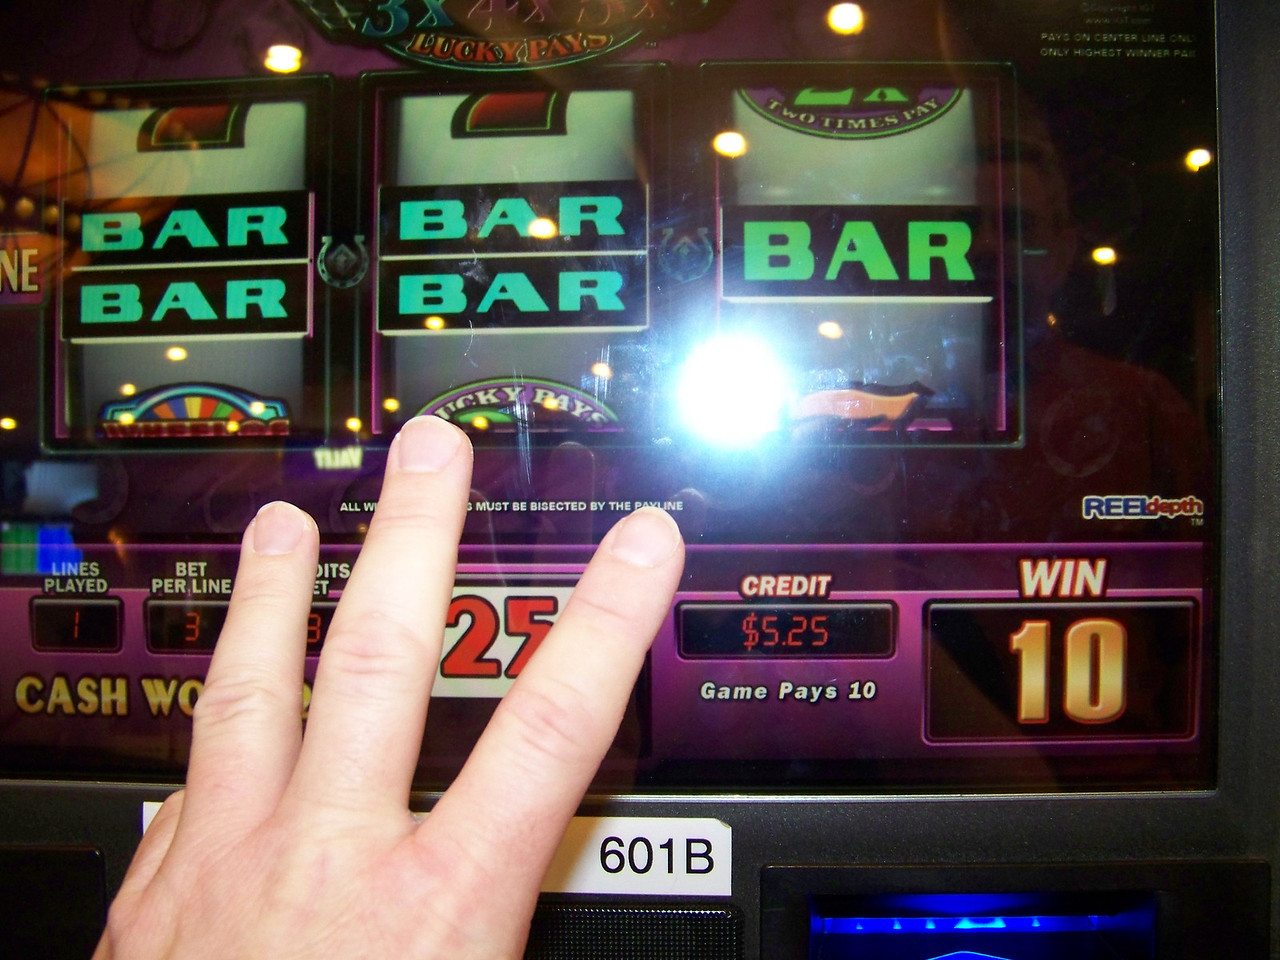 Jeff's spin #3 on the Wheel of Fortune machine.  Result: Win 10 quarters ($2.50).  Balance: $5.25.<br /> [Reno]